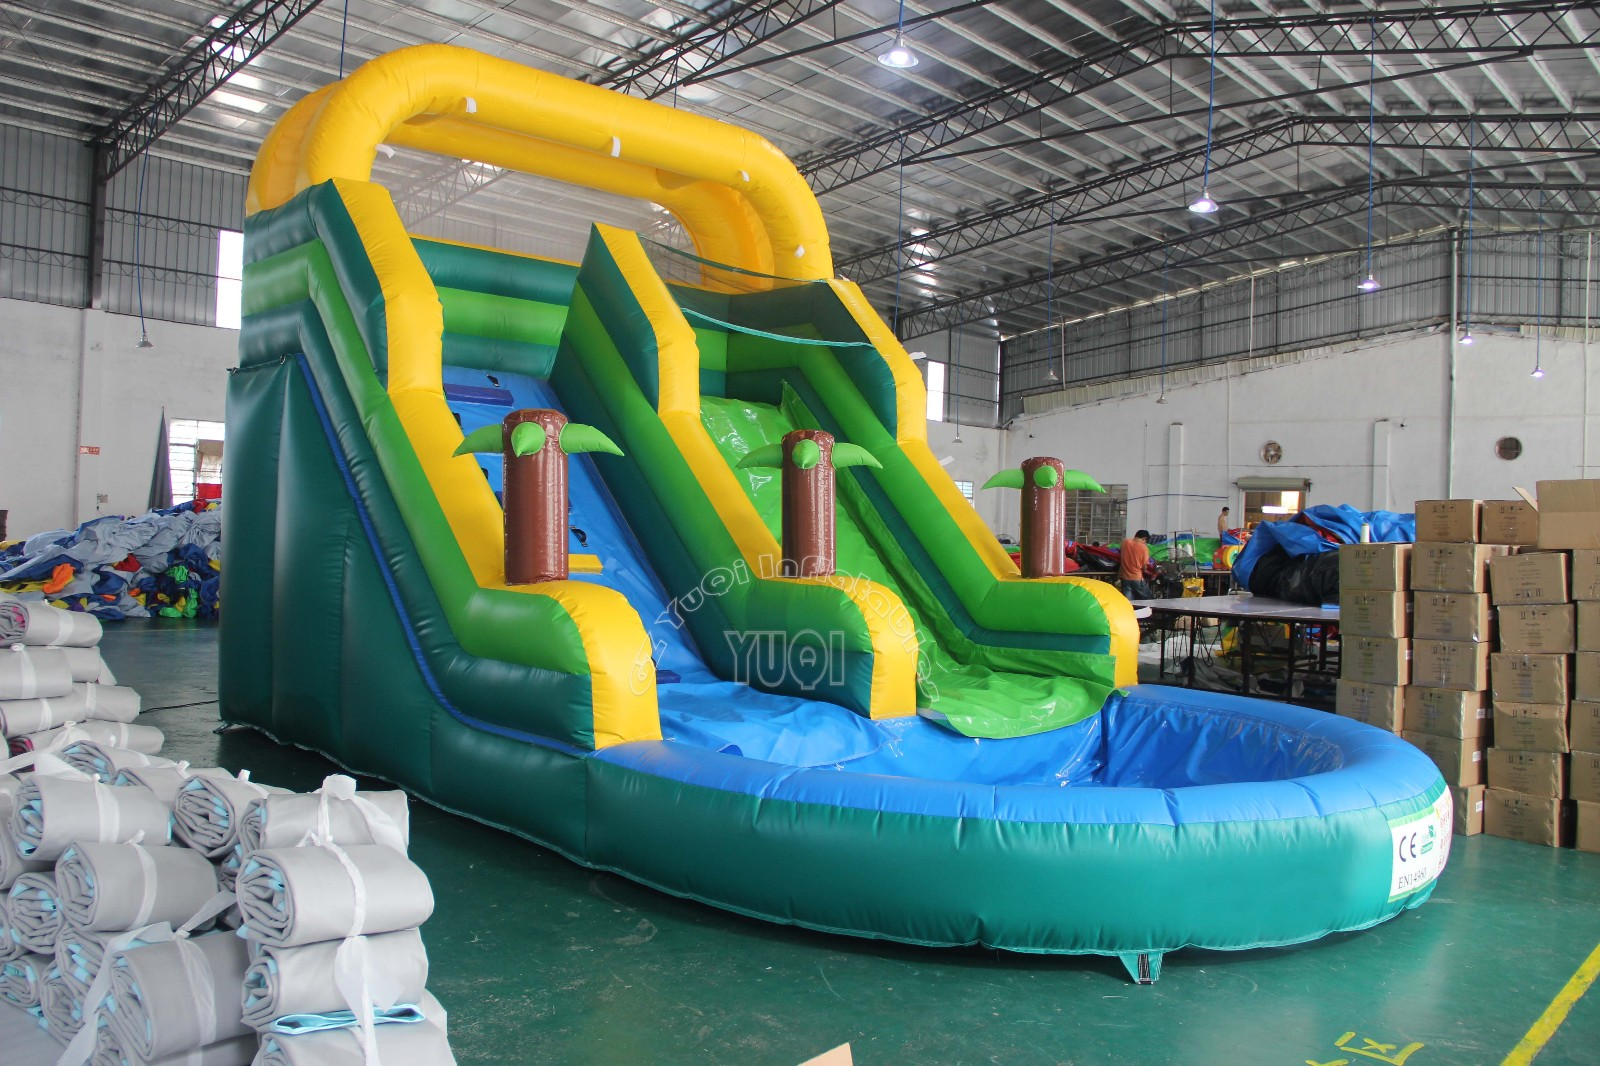 YUQI-Best Inflatable Slip And Slide Yq357 Inflatable Water Slides